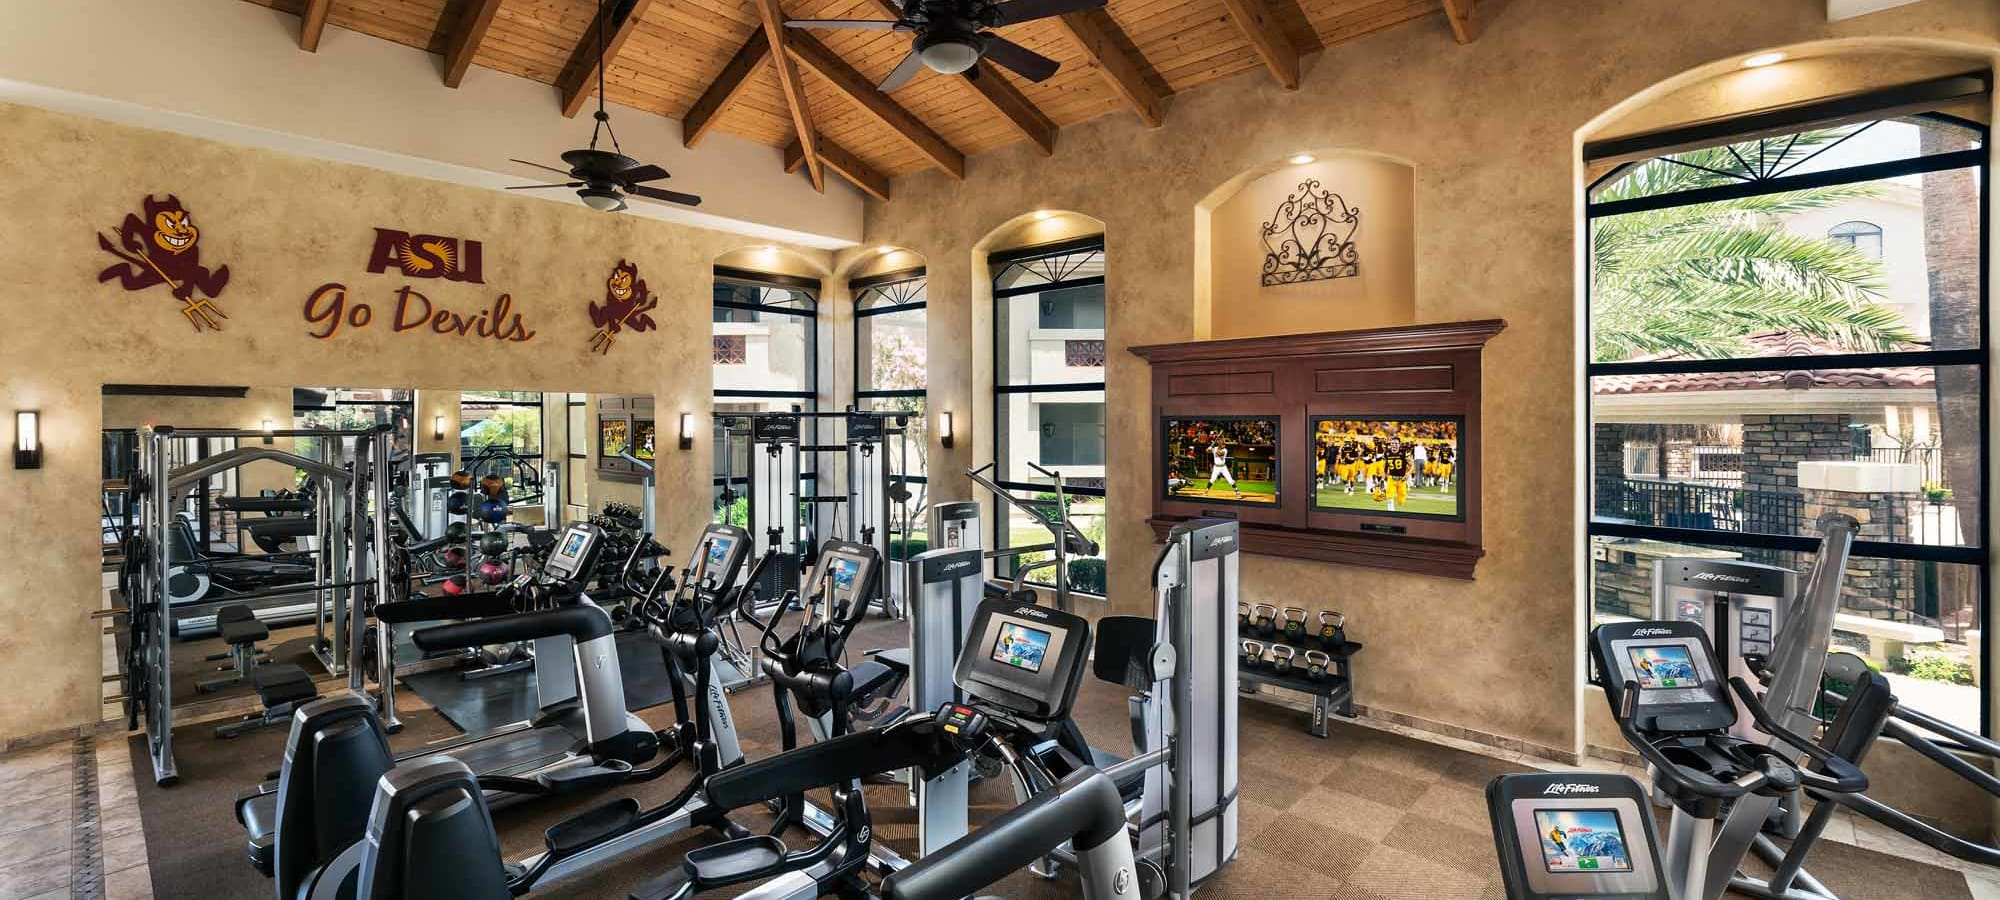 Fitness center at San Marbeya in Tempe, Arizona